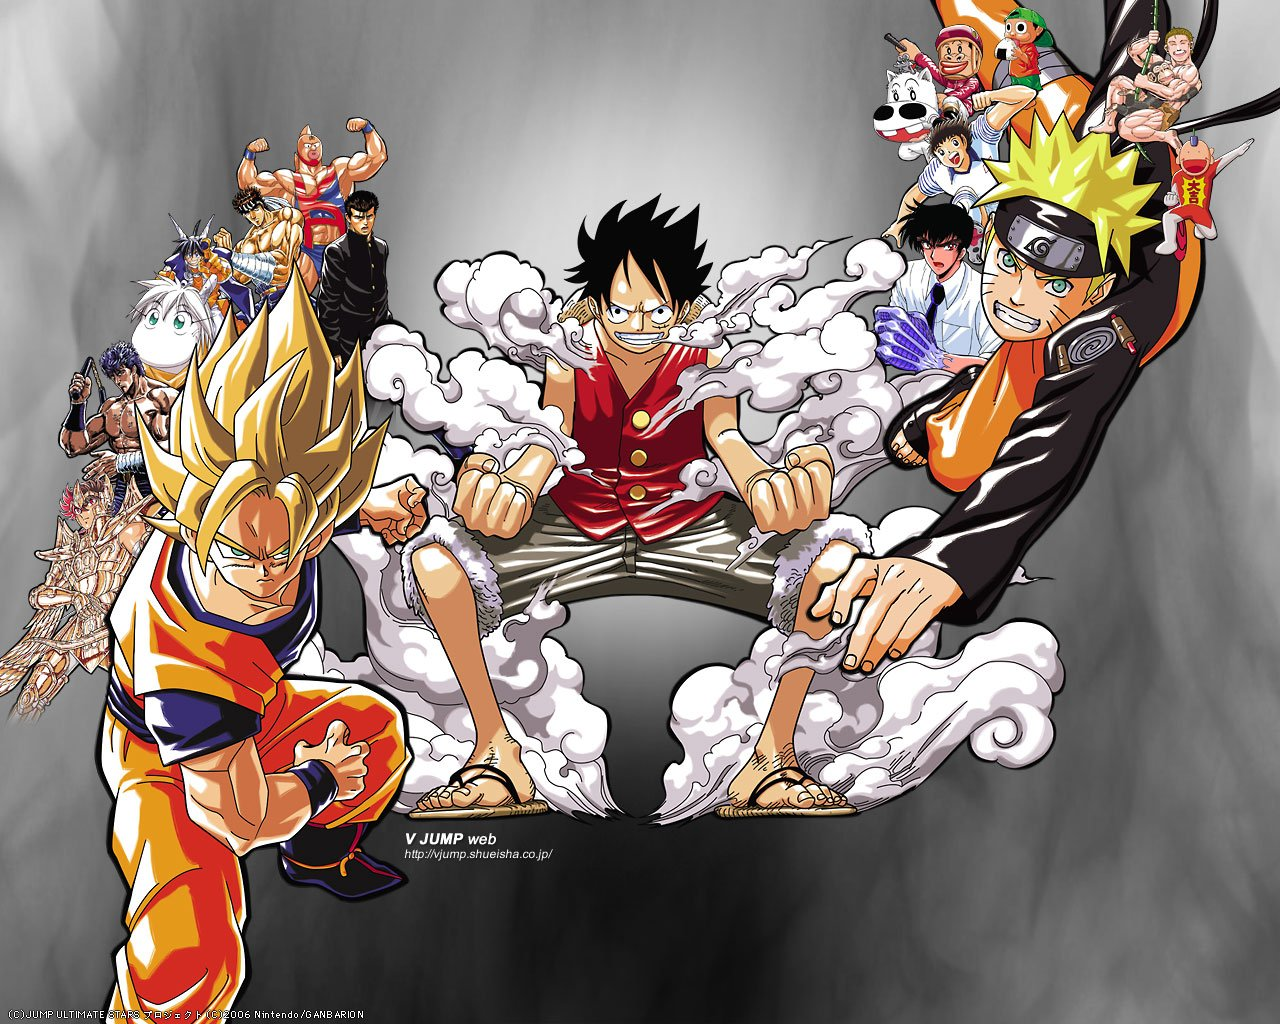 Goku Vs Naruto Best Developer Wallpaper Coloring Online 1280x1024